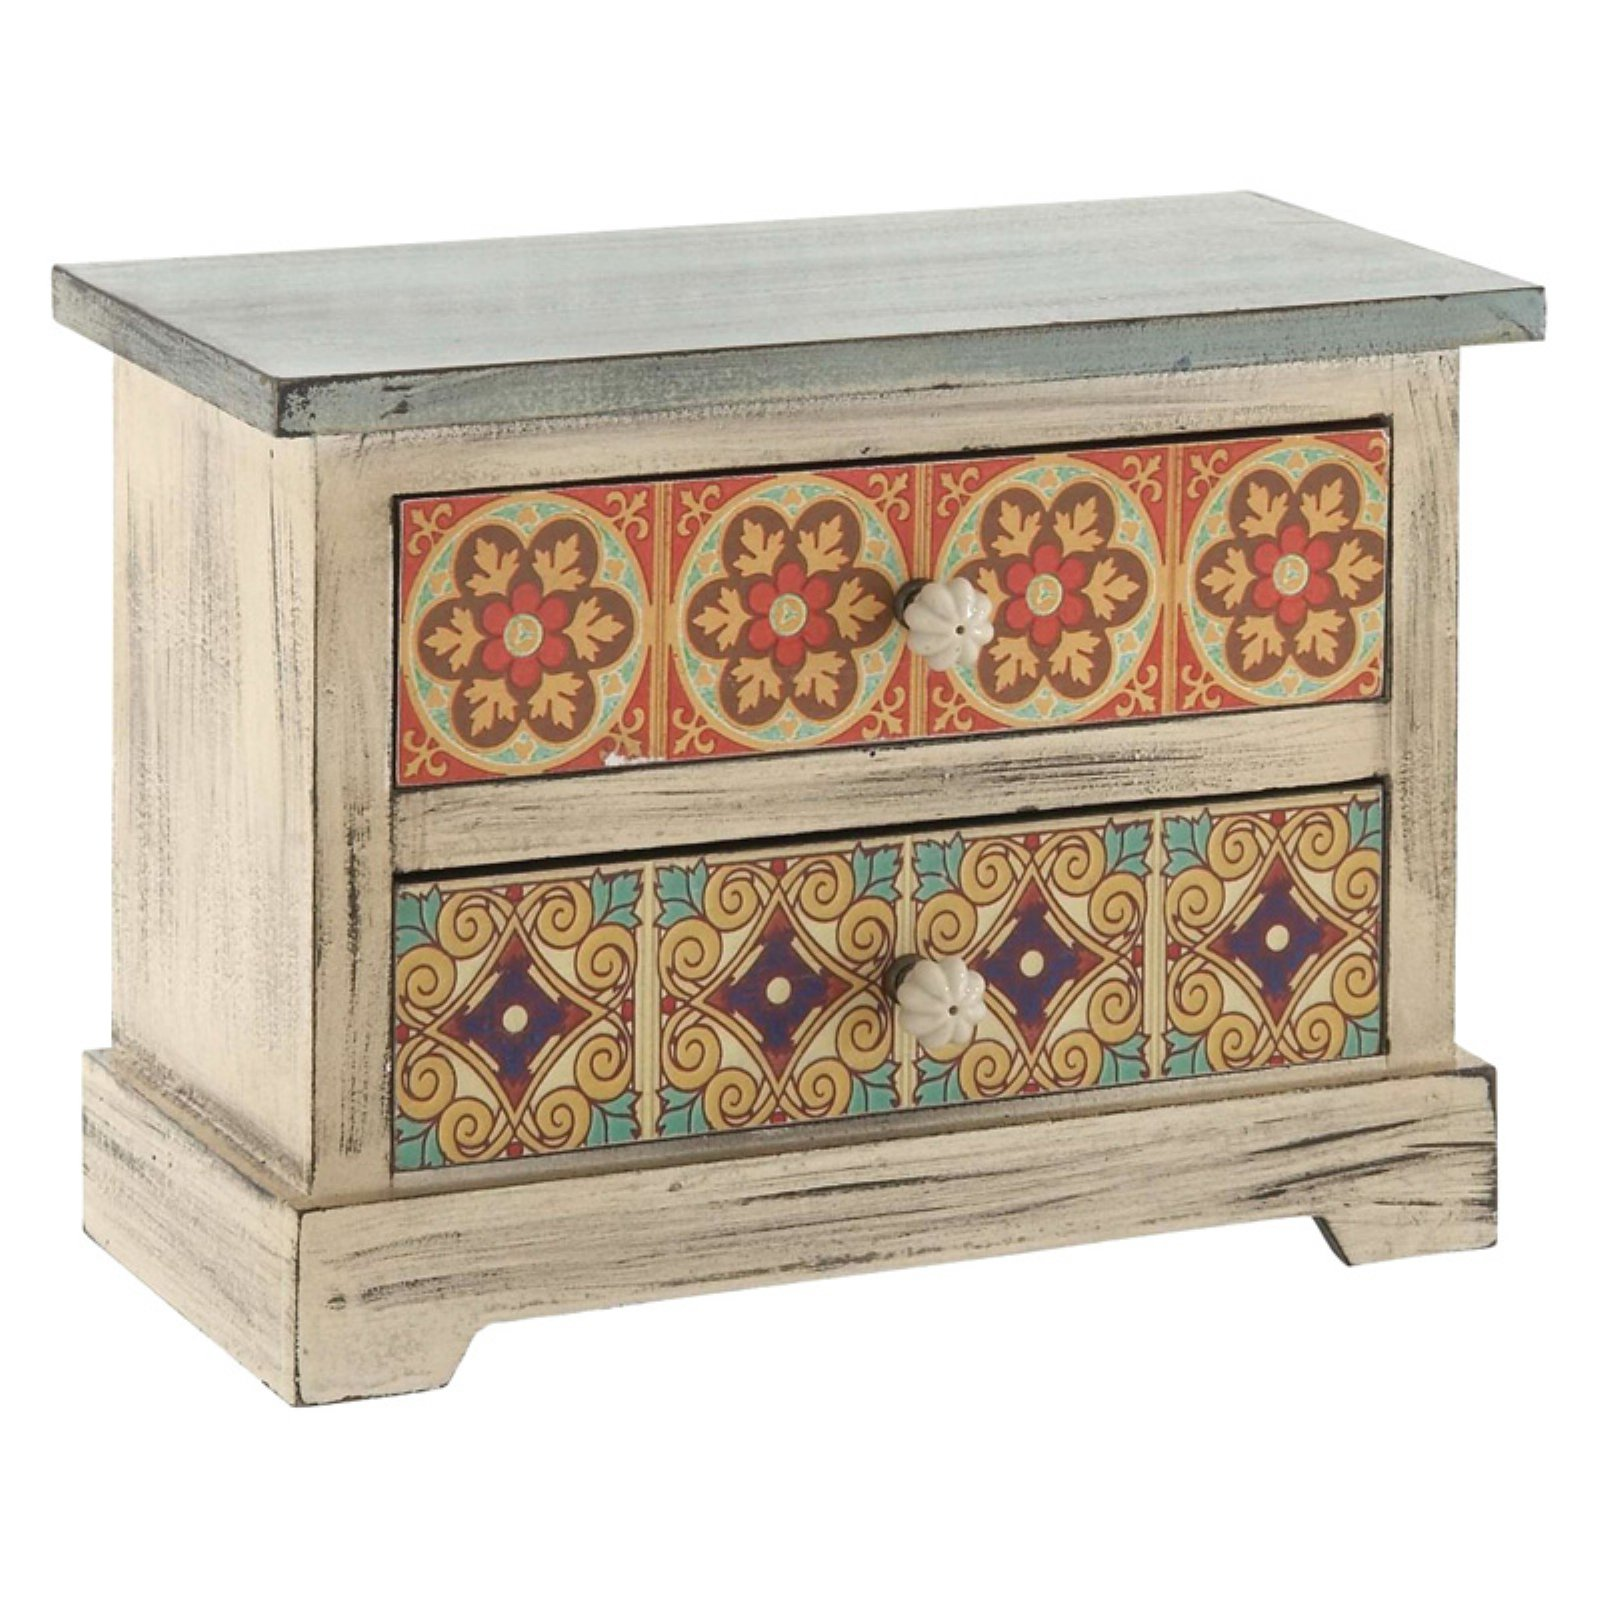 DecMode 10x14'' Wood Accent Jewelry Tabletop Chest